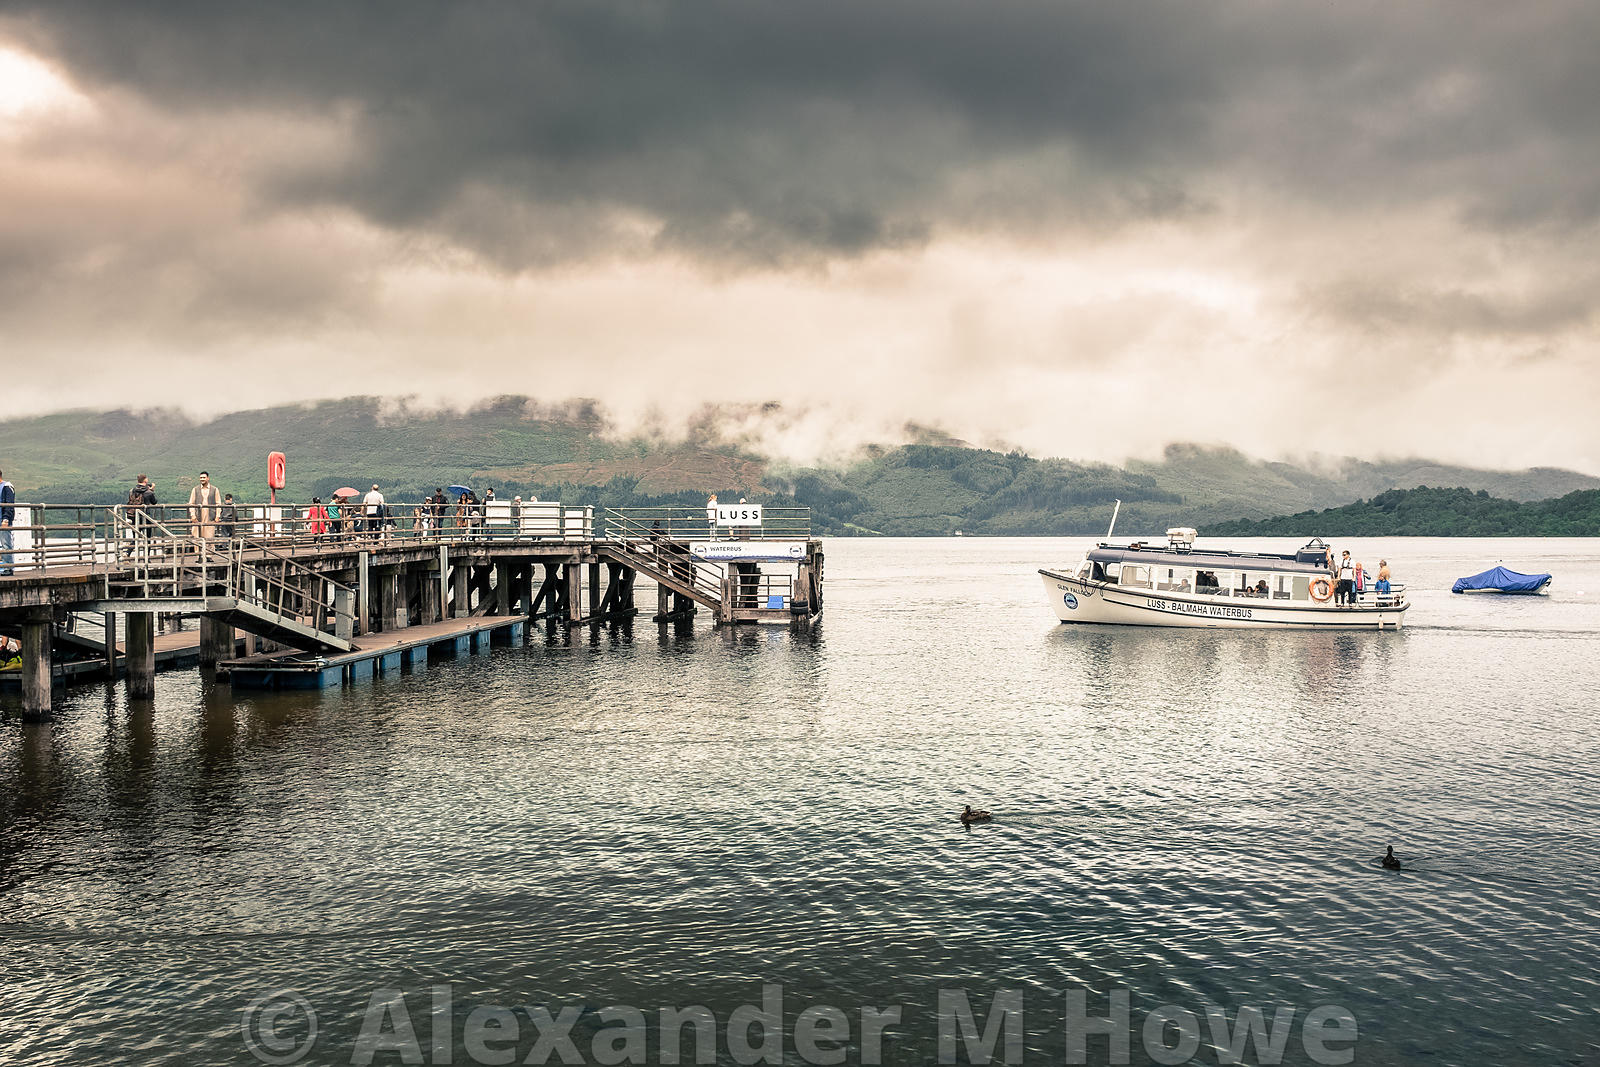 The Glen Falloch pleasure boat approaching the Luss pier on a heavily overcast day on Loch Lomond